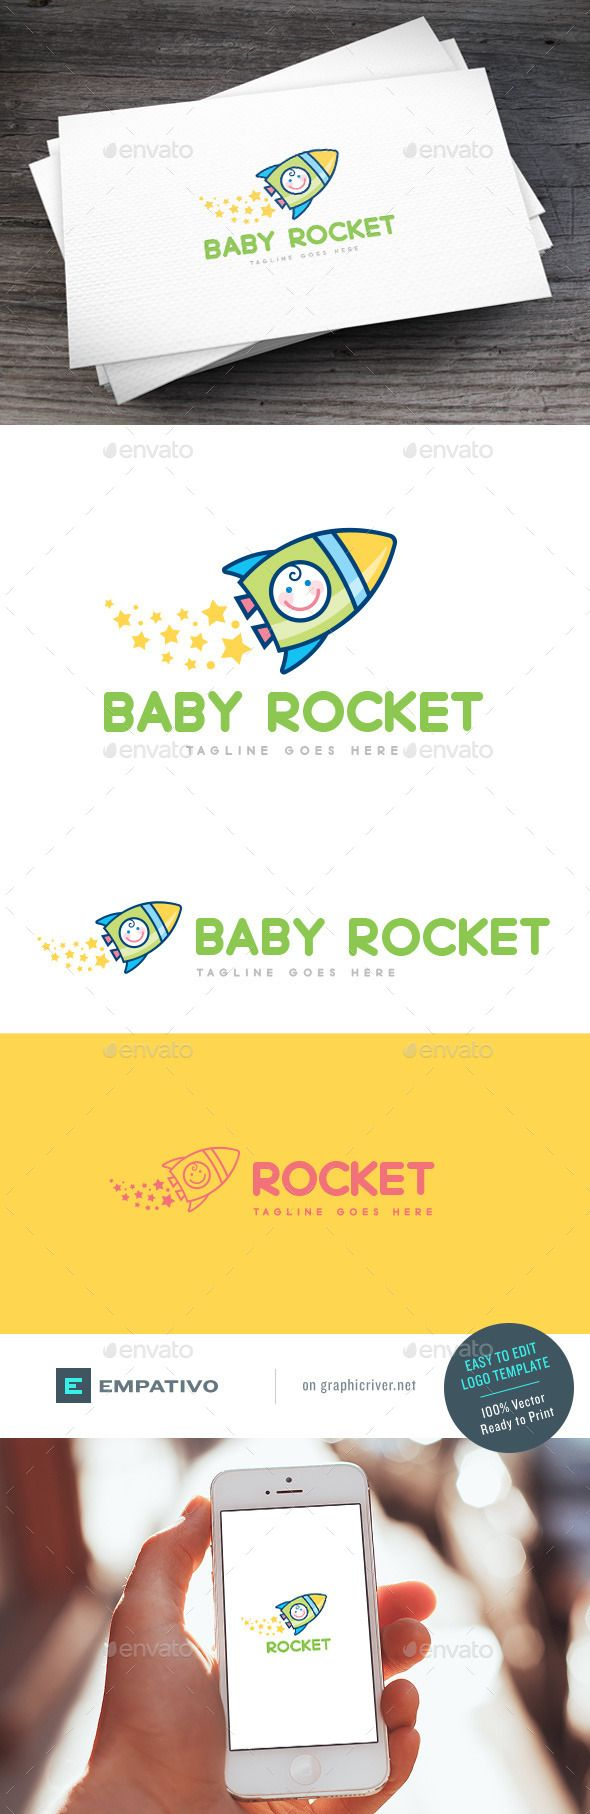 Baby Rocket Logo Template — Vector EPS #kids store #motherhood • Available here → https://graphicriver.net/item/baby-rocket-logo-template/11579869?ref=pxcr